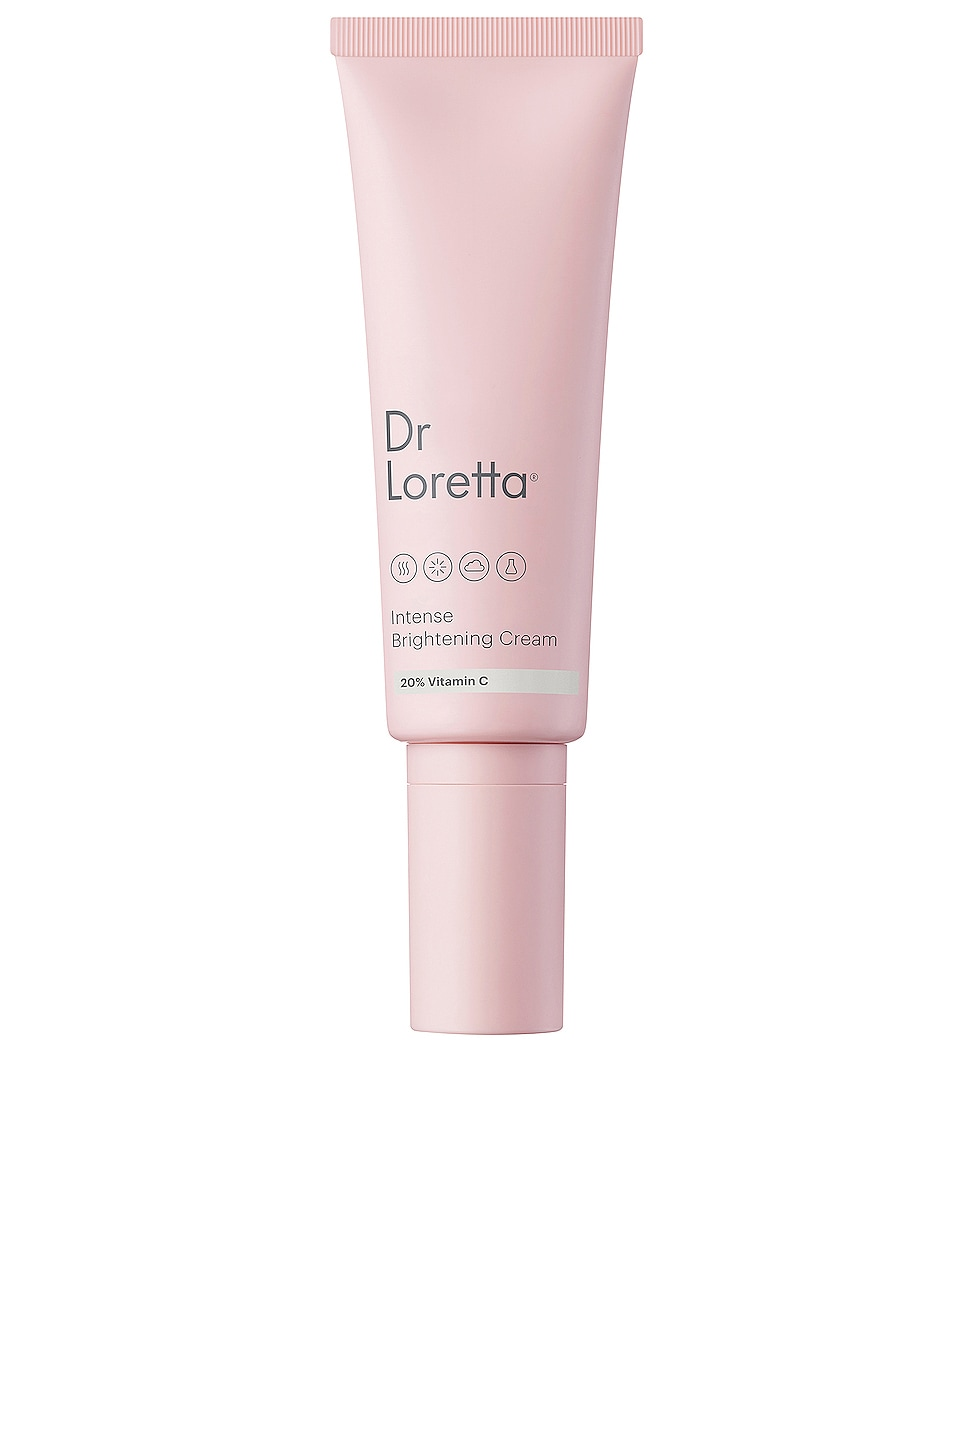 Dr. Loretta Intense Brightening Cream